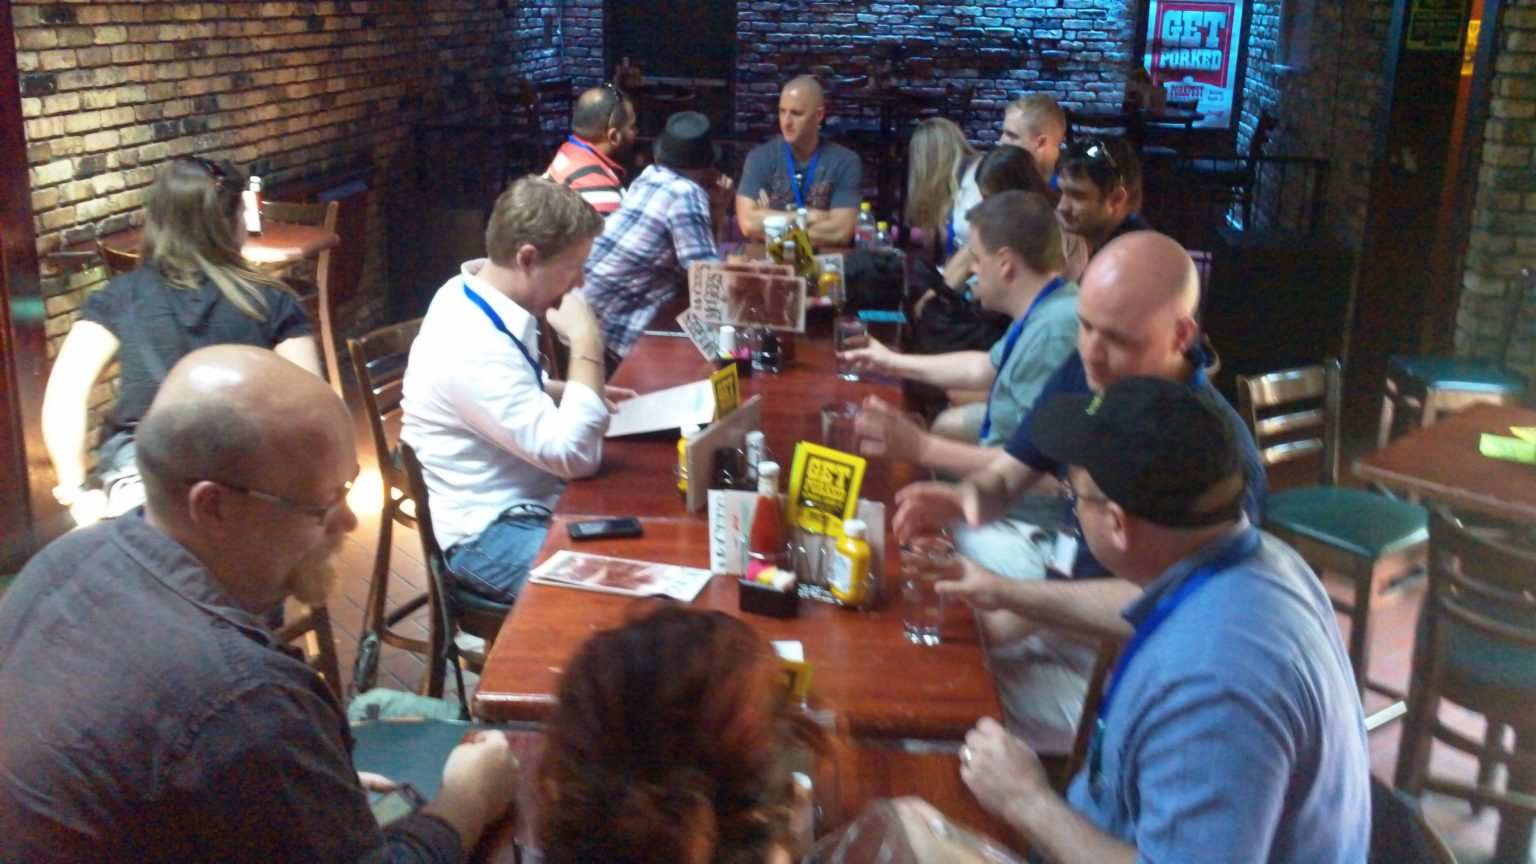 Photo of people sitting around awaiting lunch in a bar